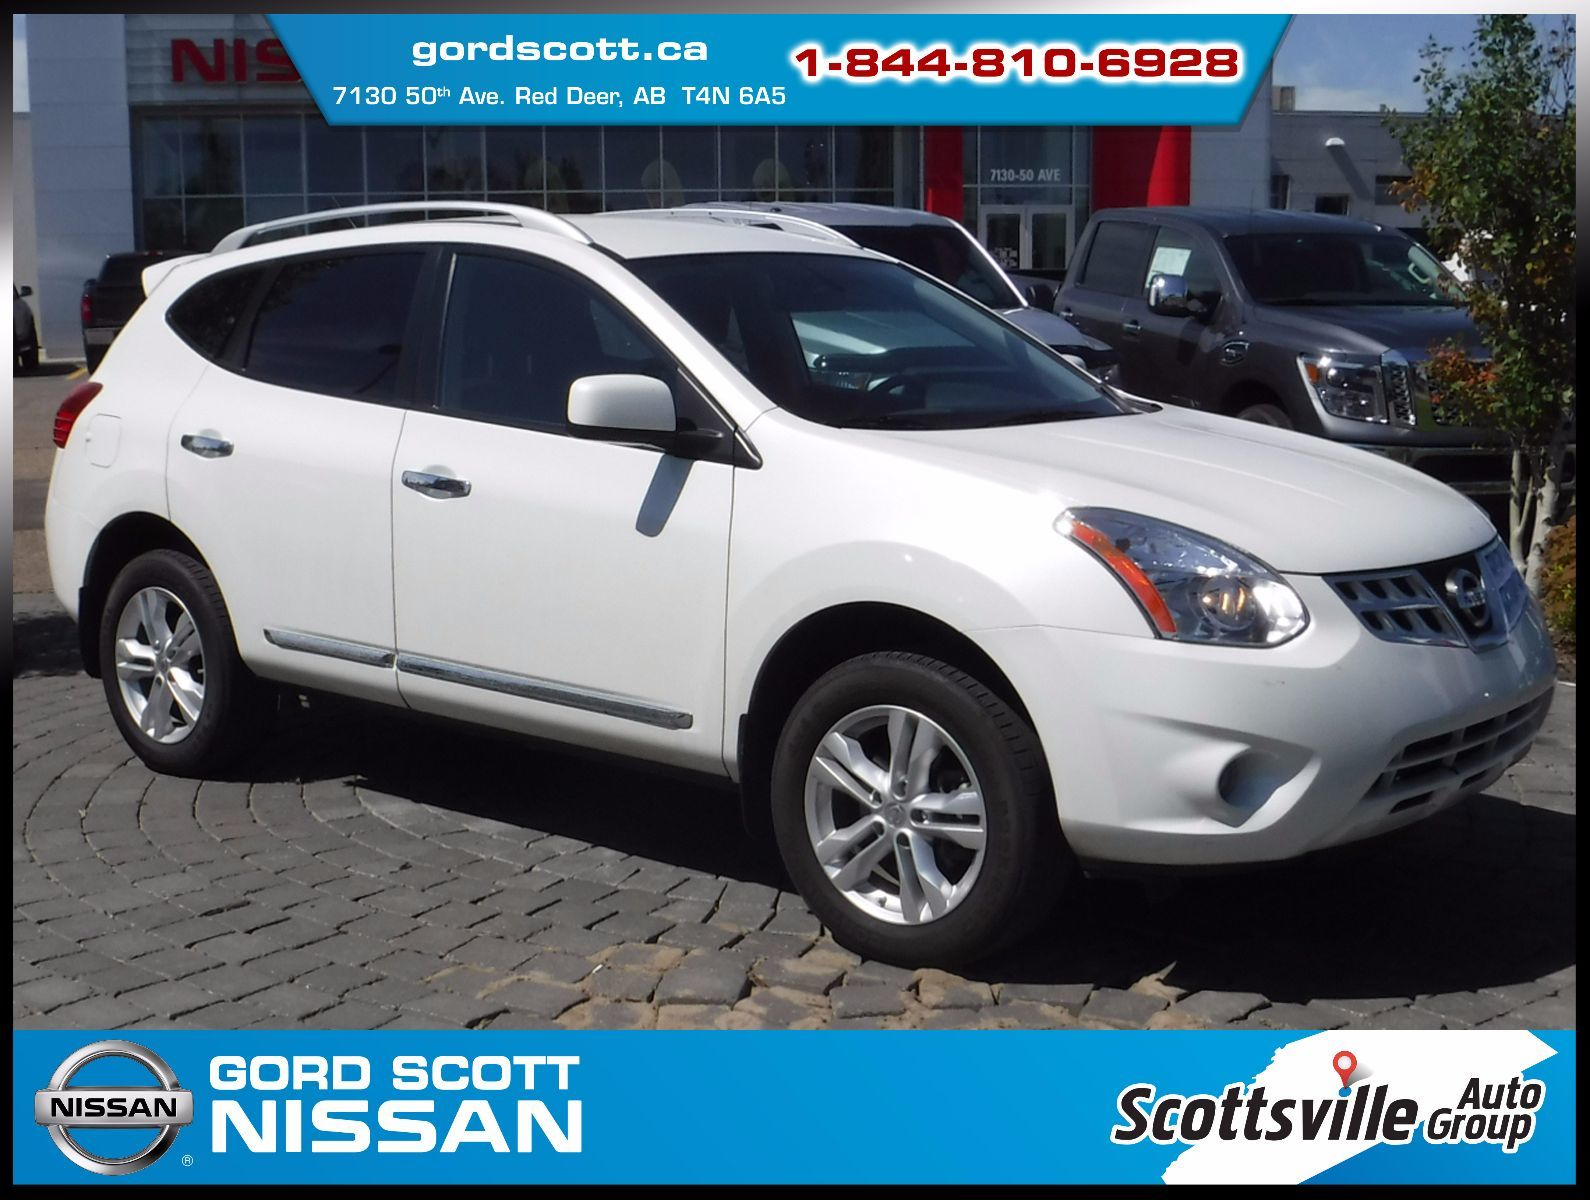 pre owned 2013 nissan rogue sv awd cloth cruise a c low km in red deer pre owned inventory. Black Bedroom Furniture Sets. Home Design Ideas